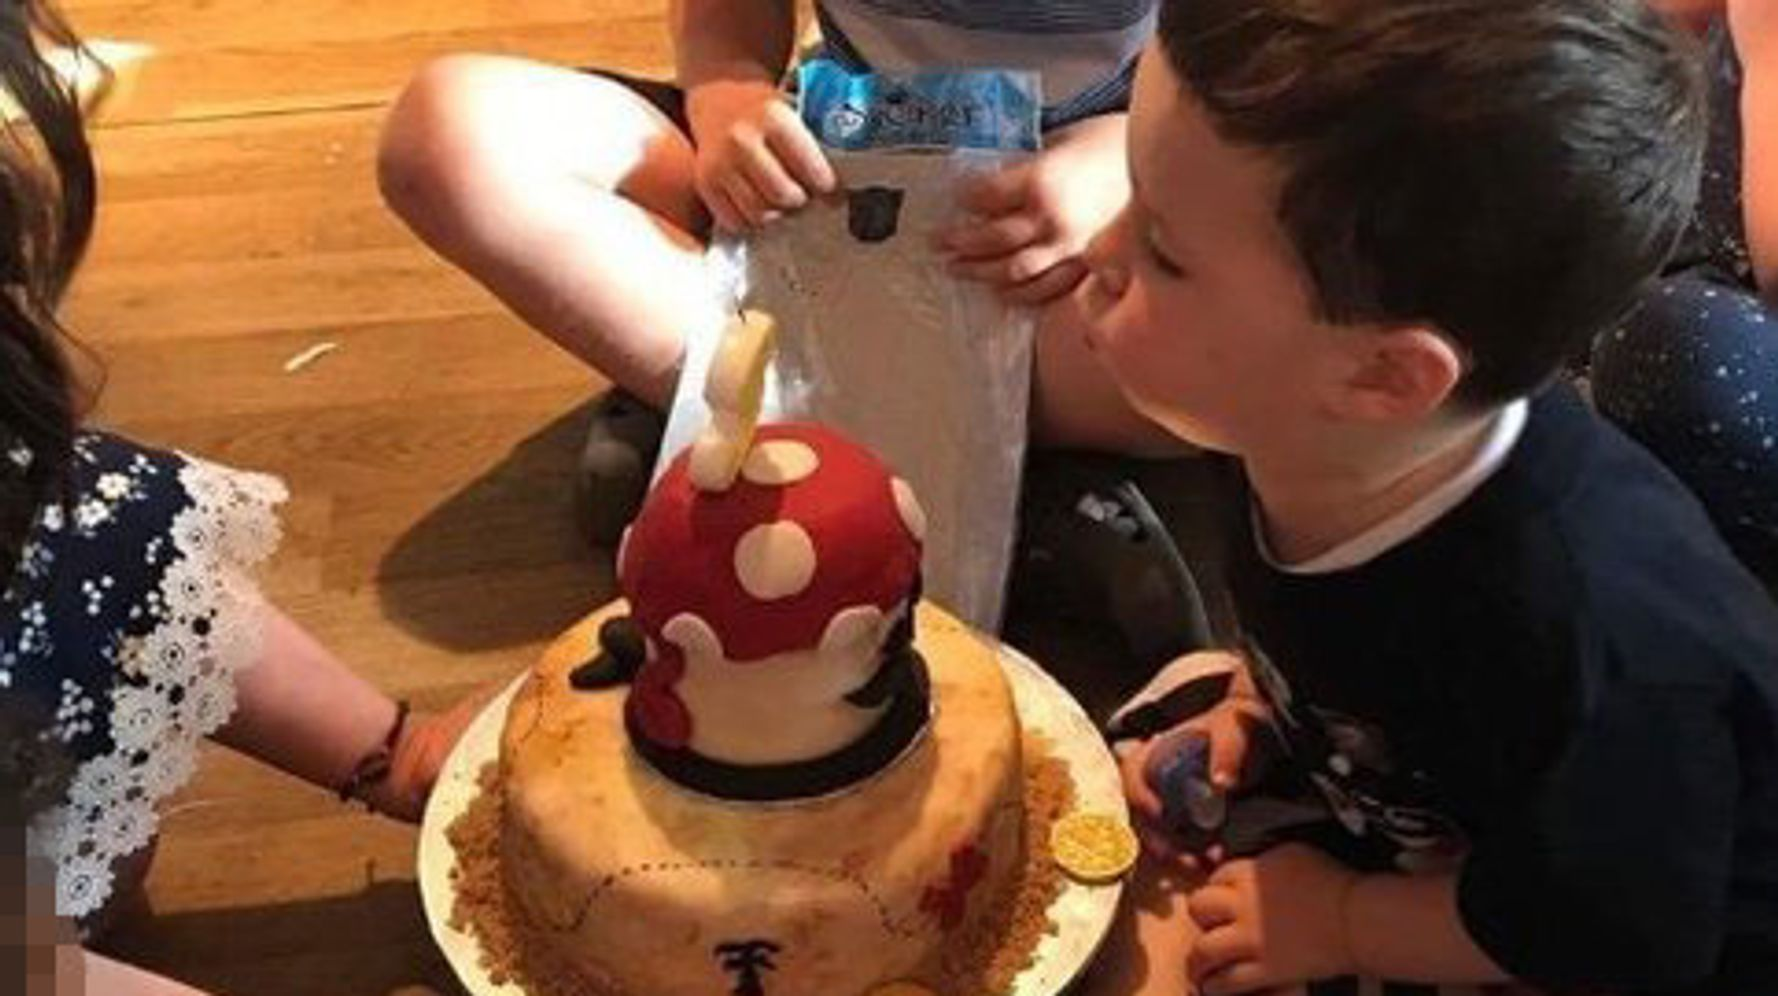 Astonishing Free Cakes For Kids These Volunteers Bake Birthday Cakes For Funny Birthday Cards Online Inifodamsfinfo